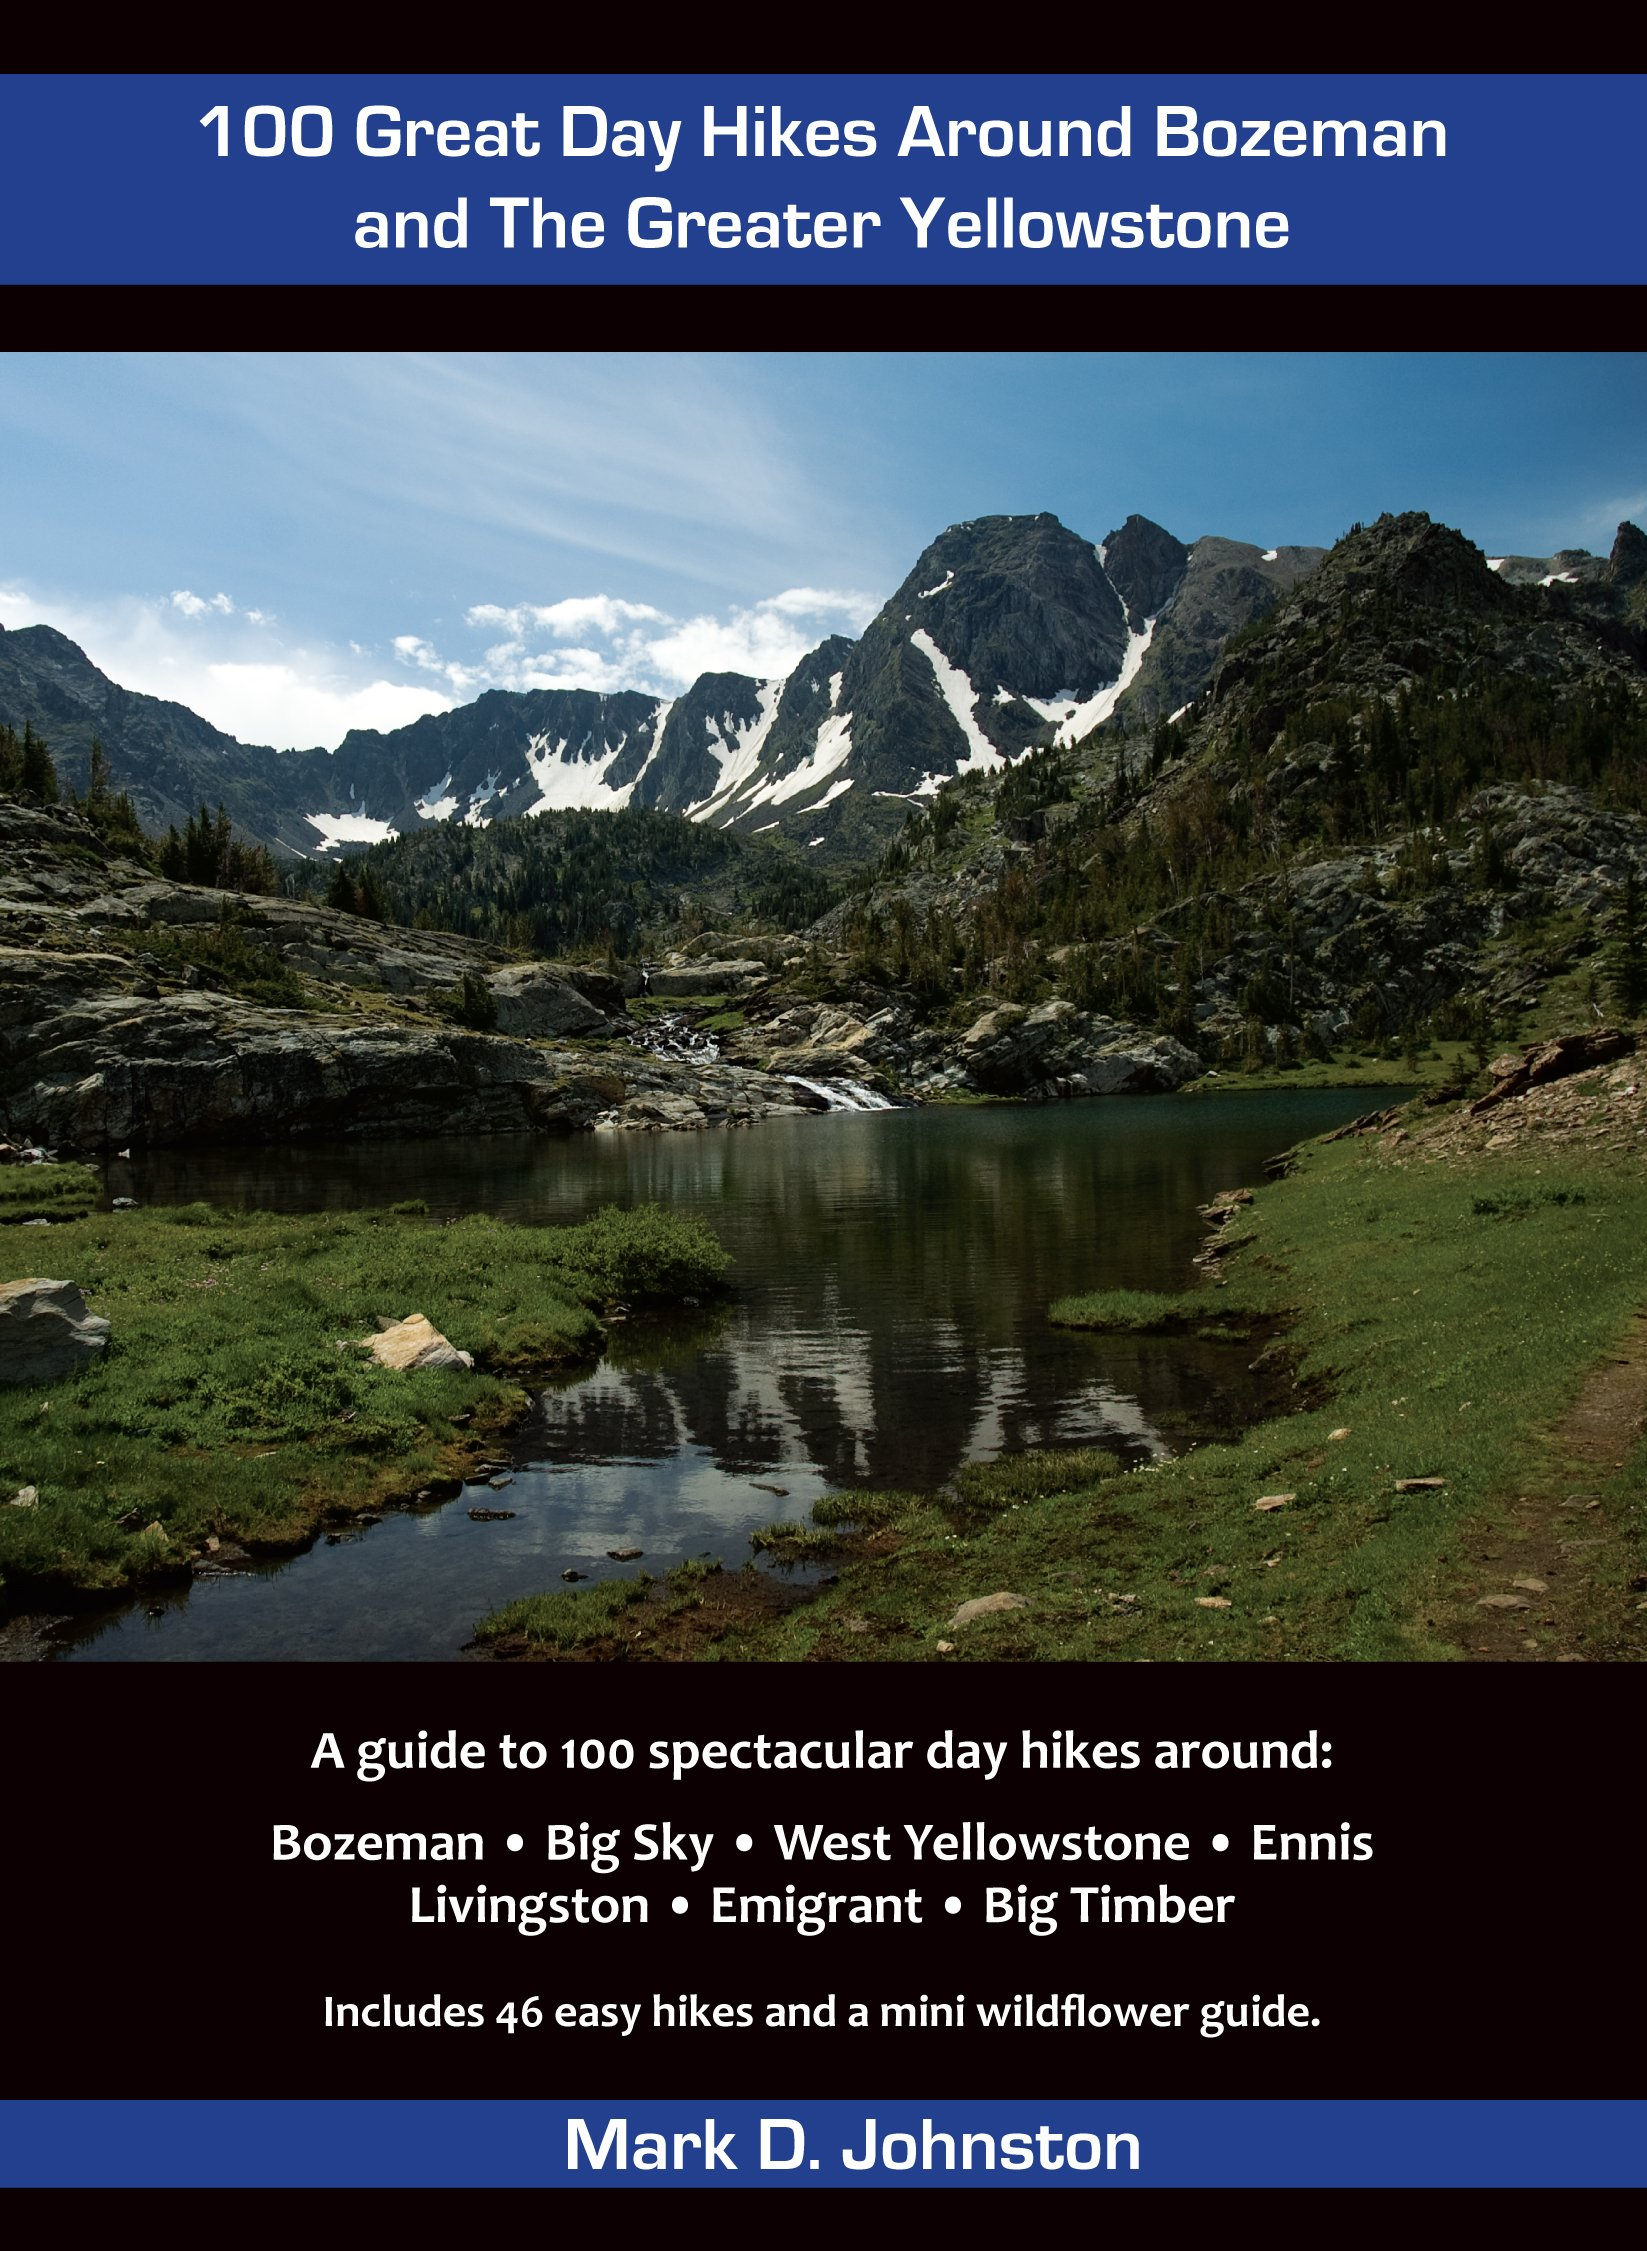 100 Great Day Hikes Around Bozeman And The Greater Yellowstone Mark D Johnston 9780615439051 Amazon Books